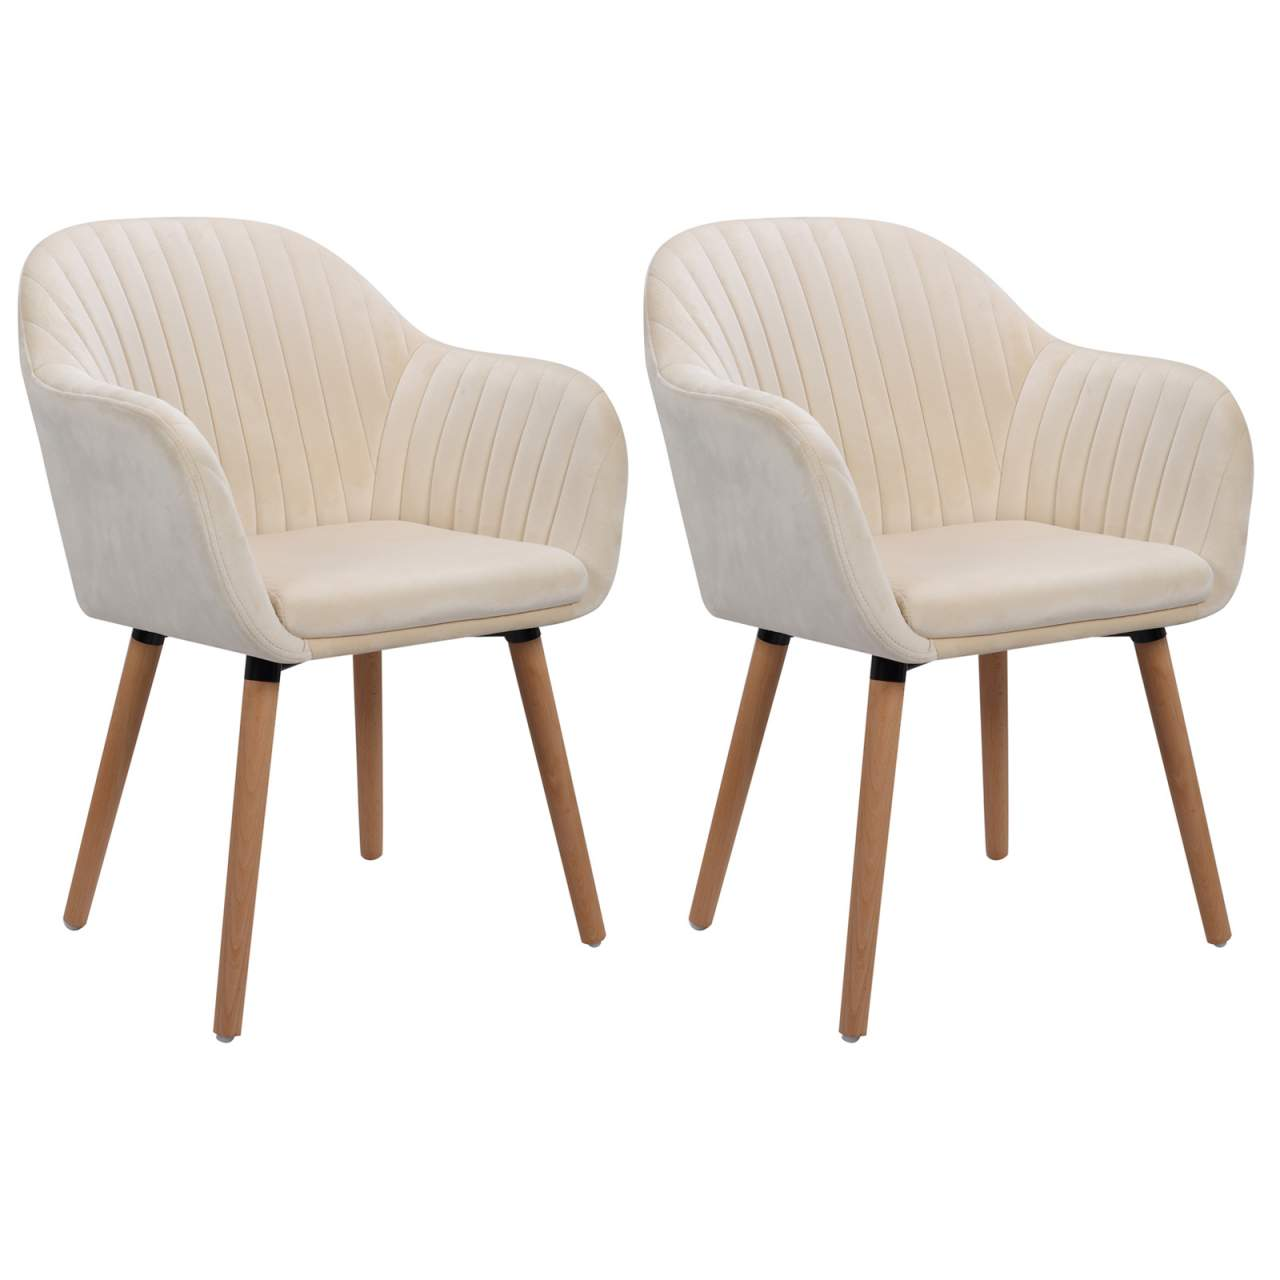 Emily Set of 2 Dining Chairs